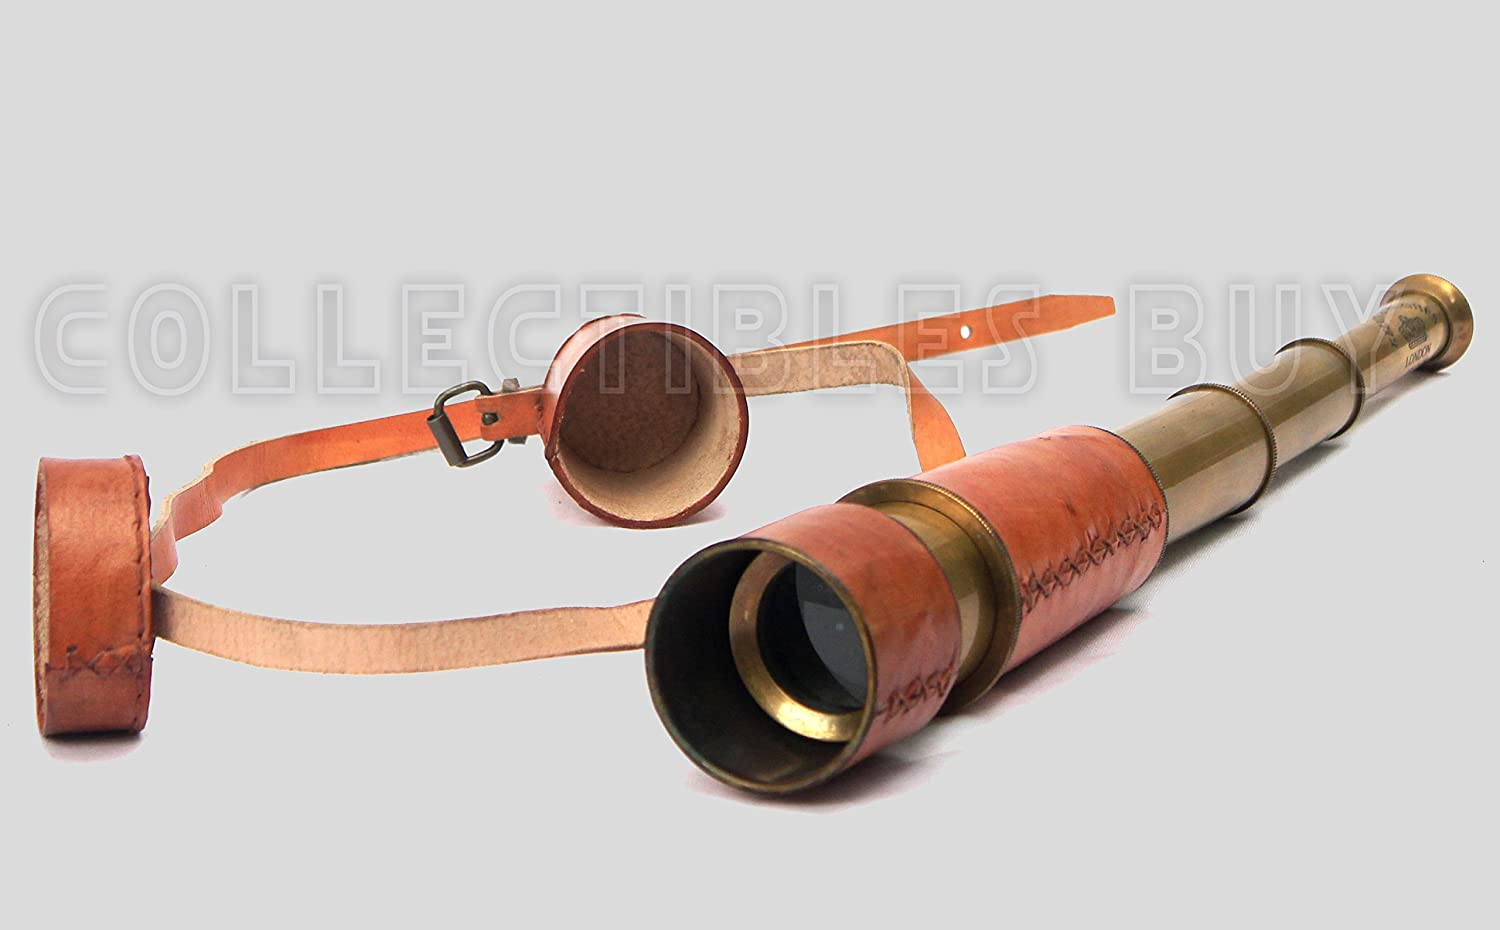 Collectibles buy Maritime Antique Royal Pirate Early Navy Leather Telescope Vintage Collection Item